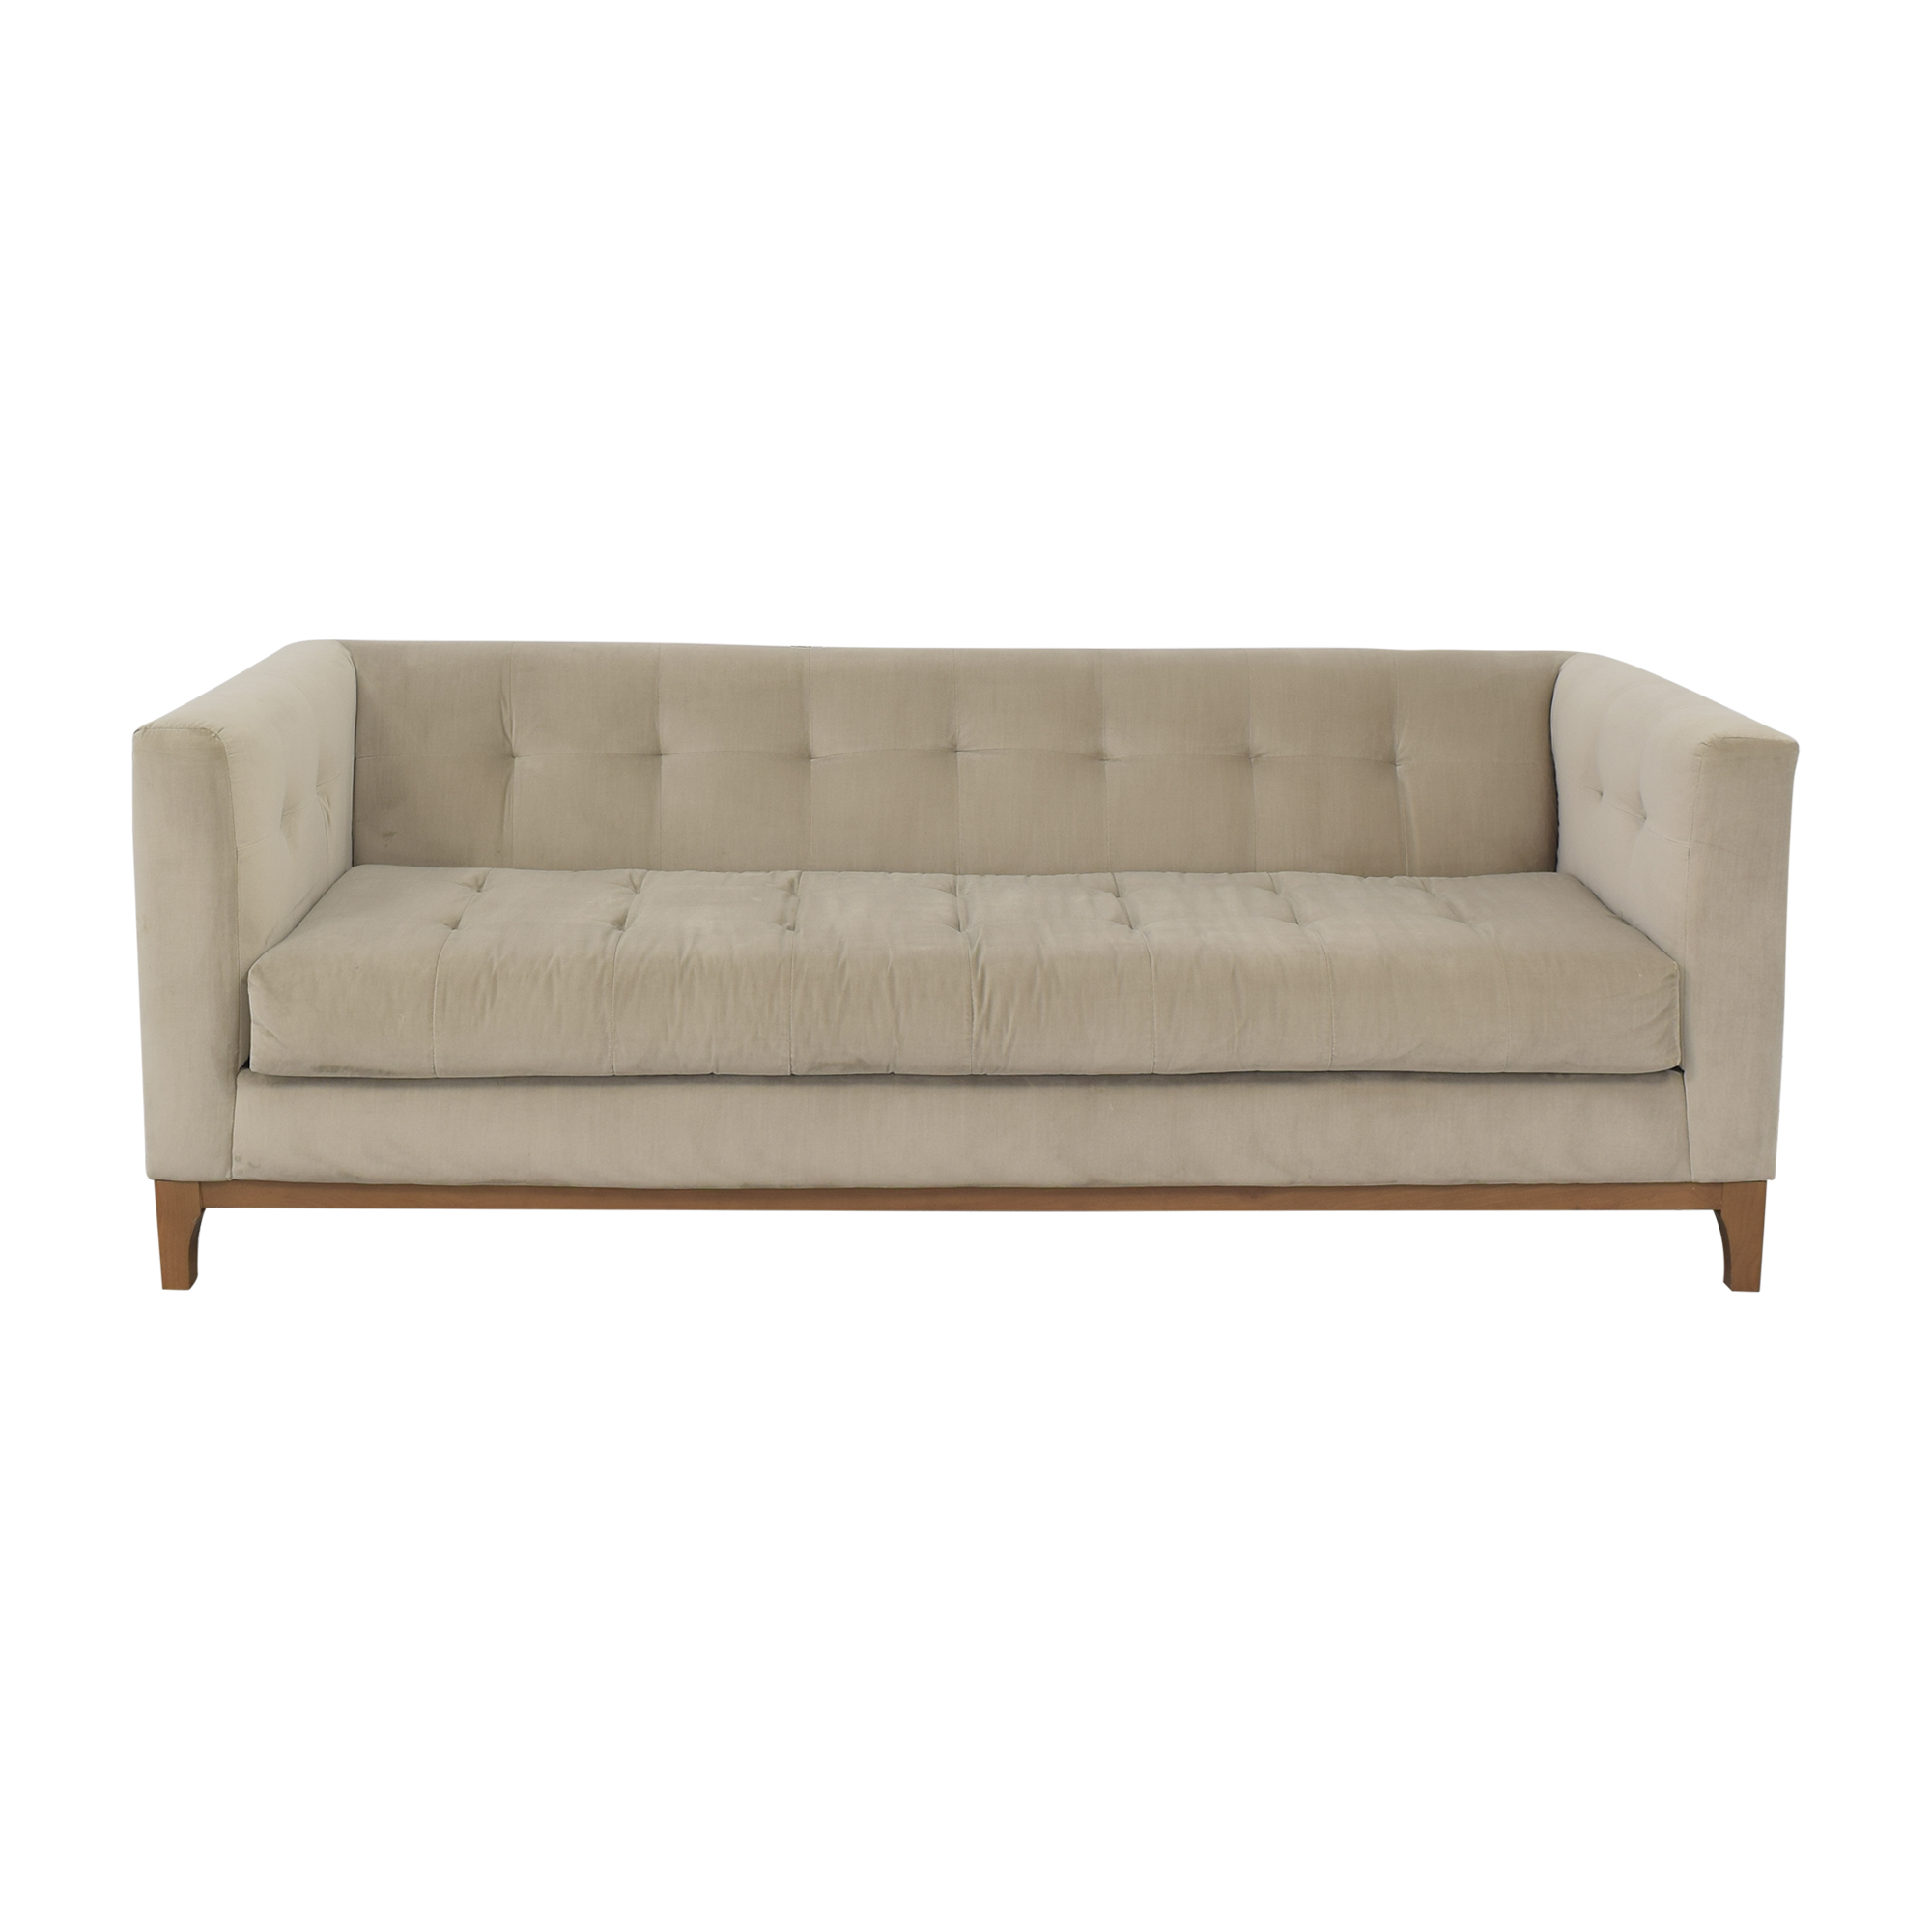 Macy's Macy's Martha Stewart Collection Brookline Sofa